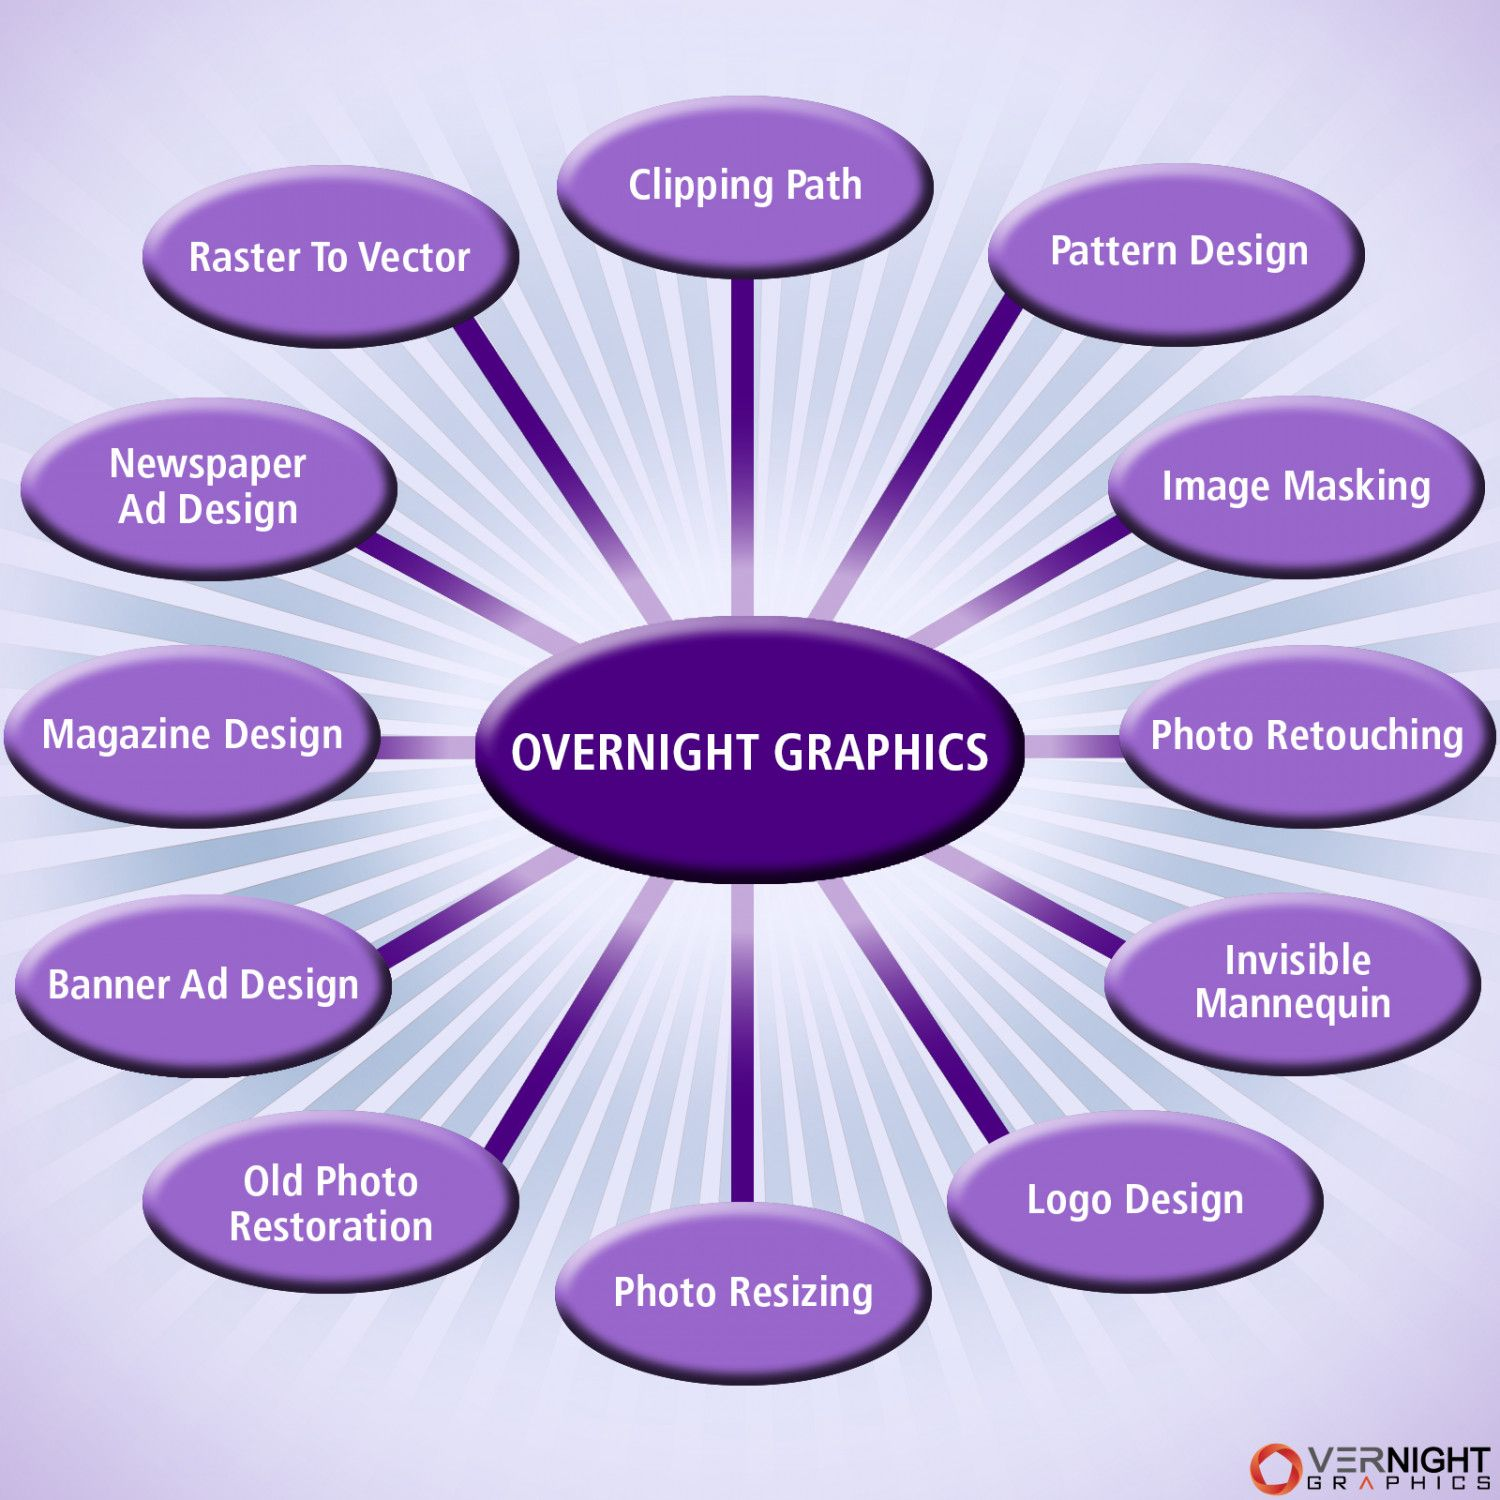 OverNight Graphics Company's Image Processing Procedure At